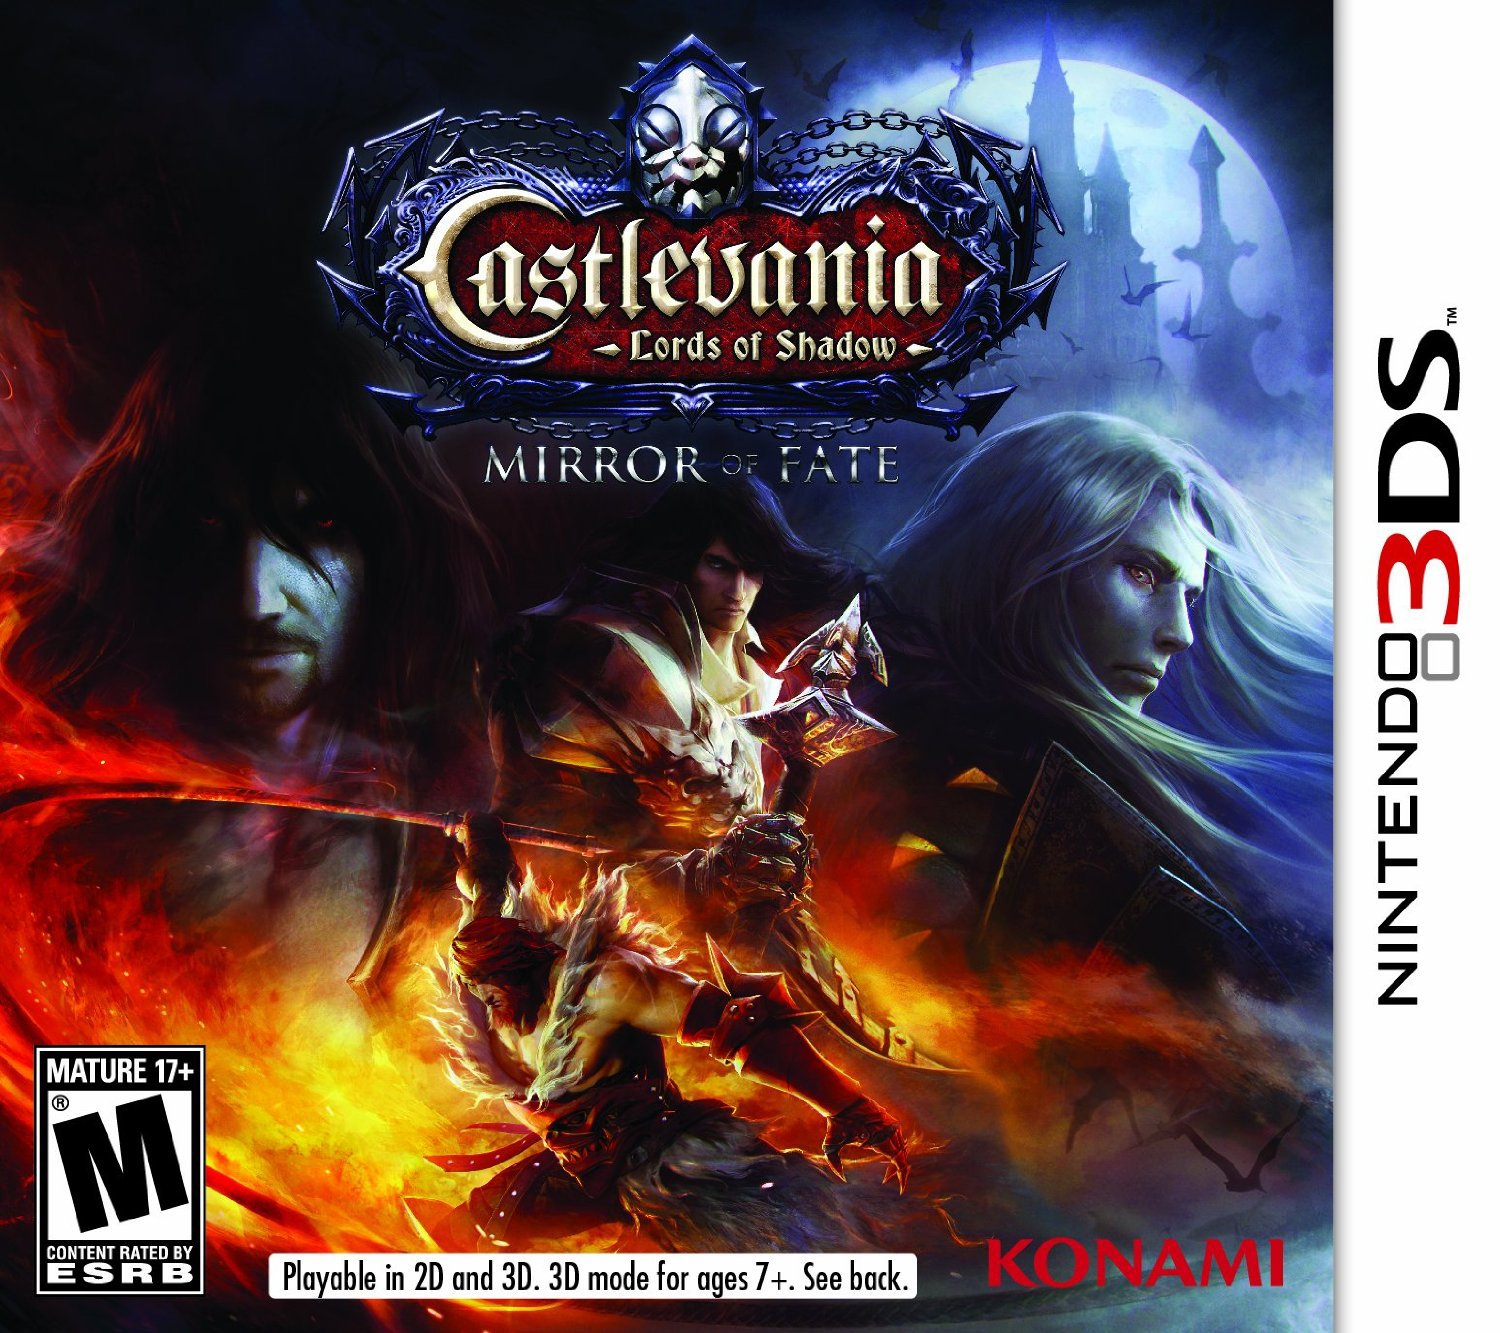 Castlevania Lords Of Shadow Mirror Of Fate Video Game 2013 Imdb